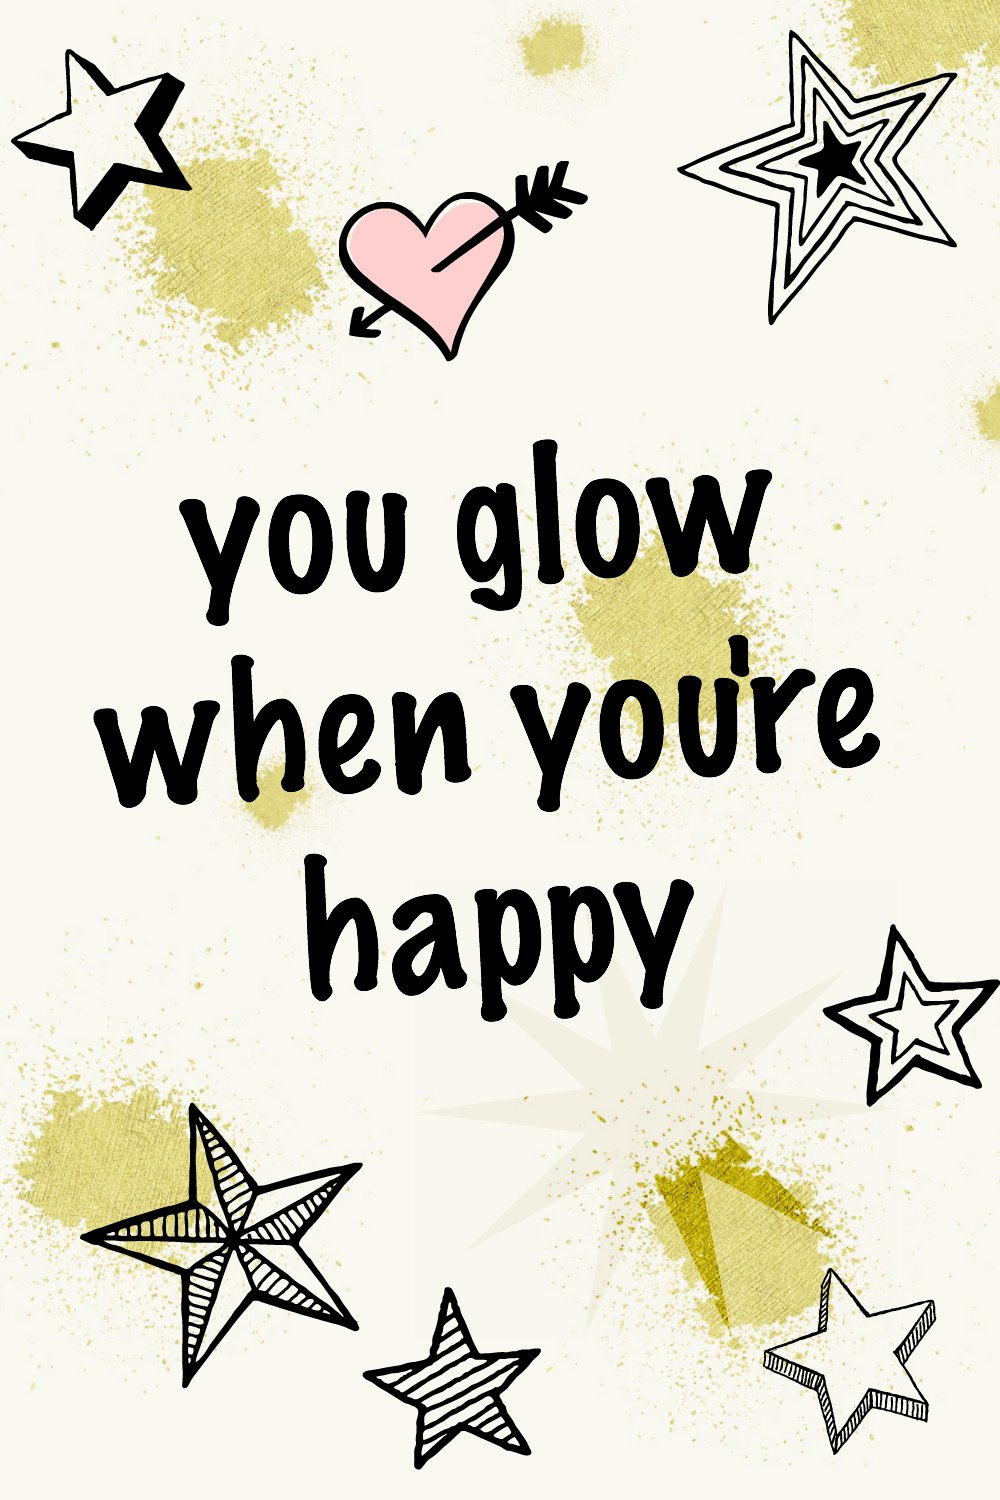 When you glow, you're happy. Happiness is a habit. Practice it. Happiness quotes #quotes #behappy #happiness